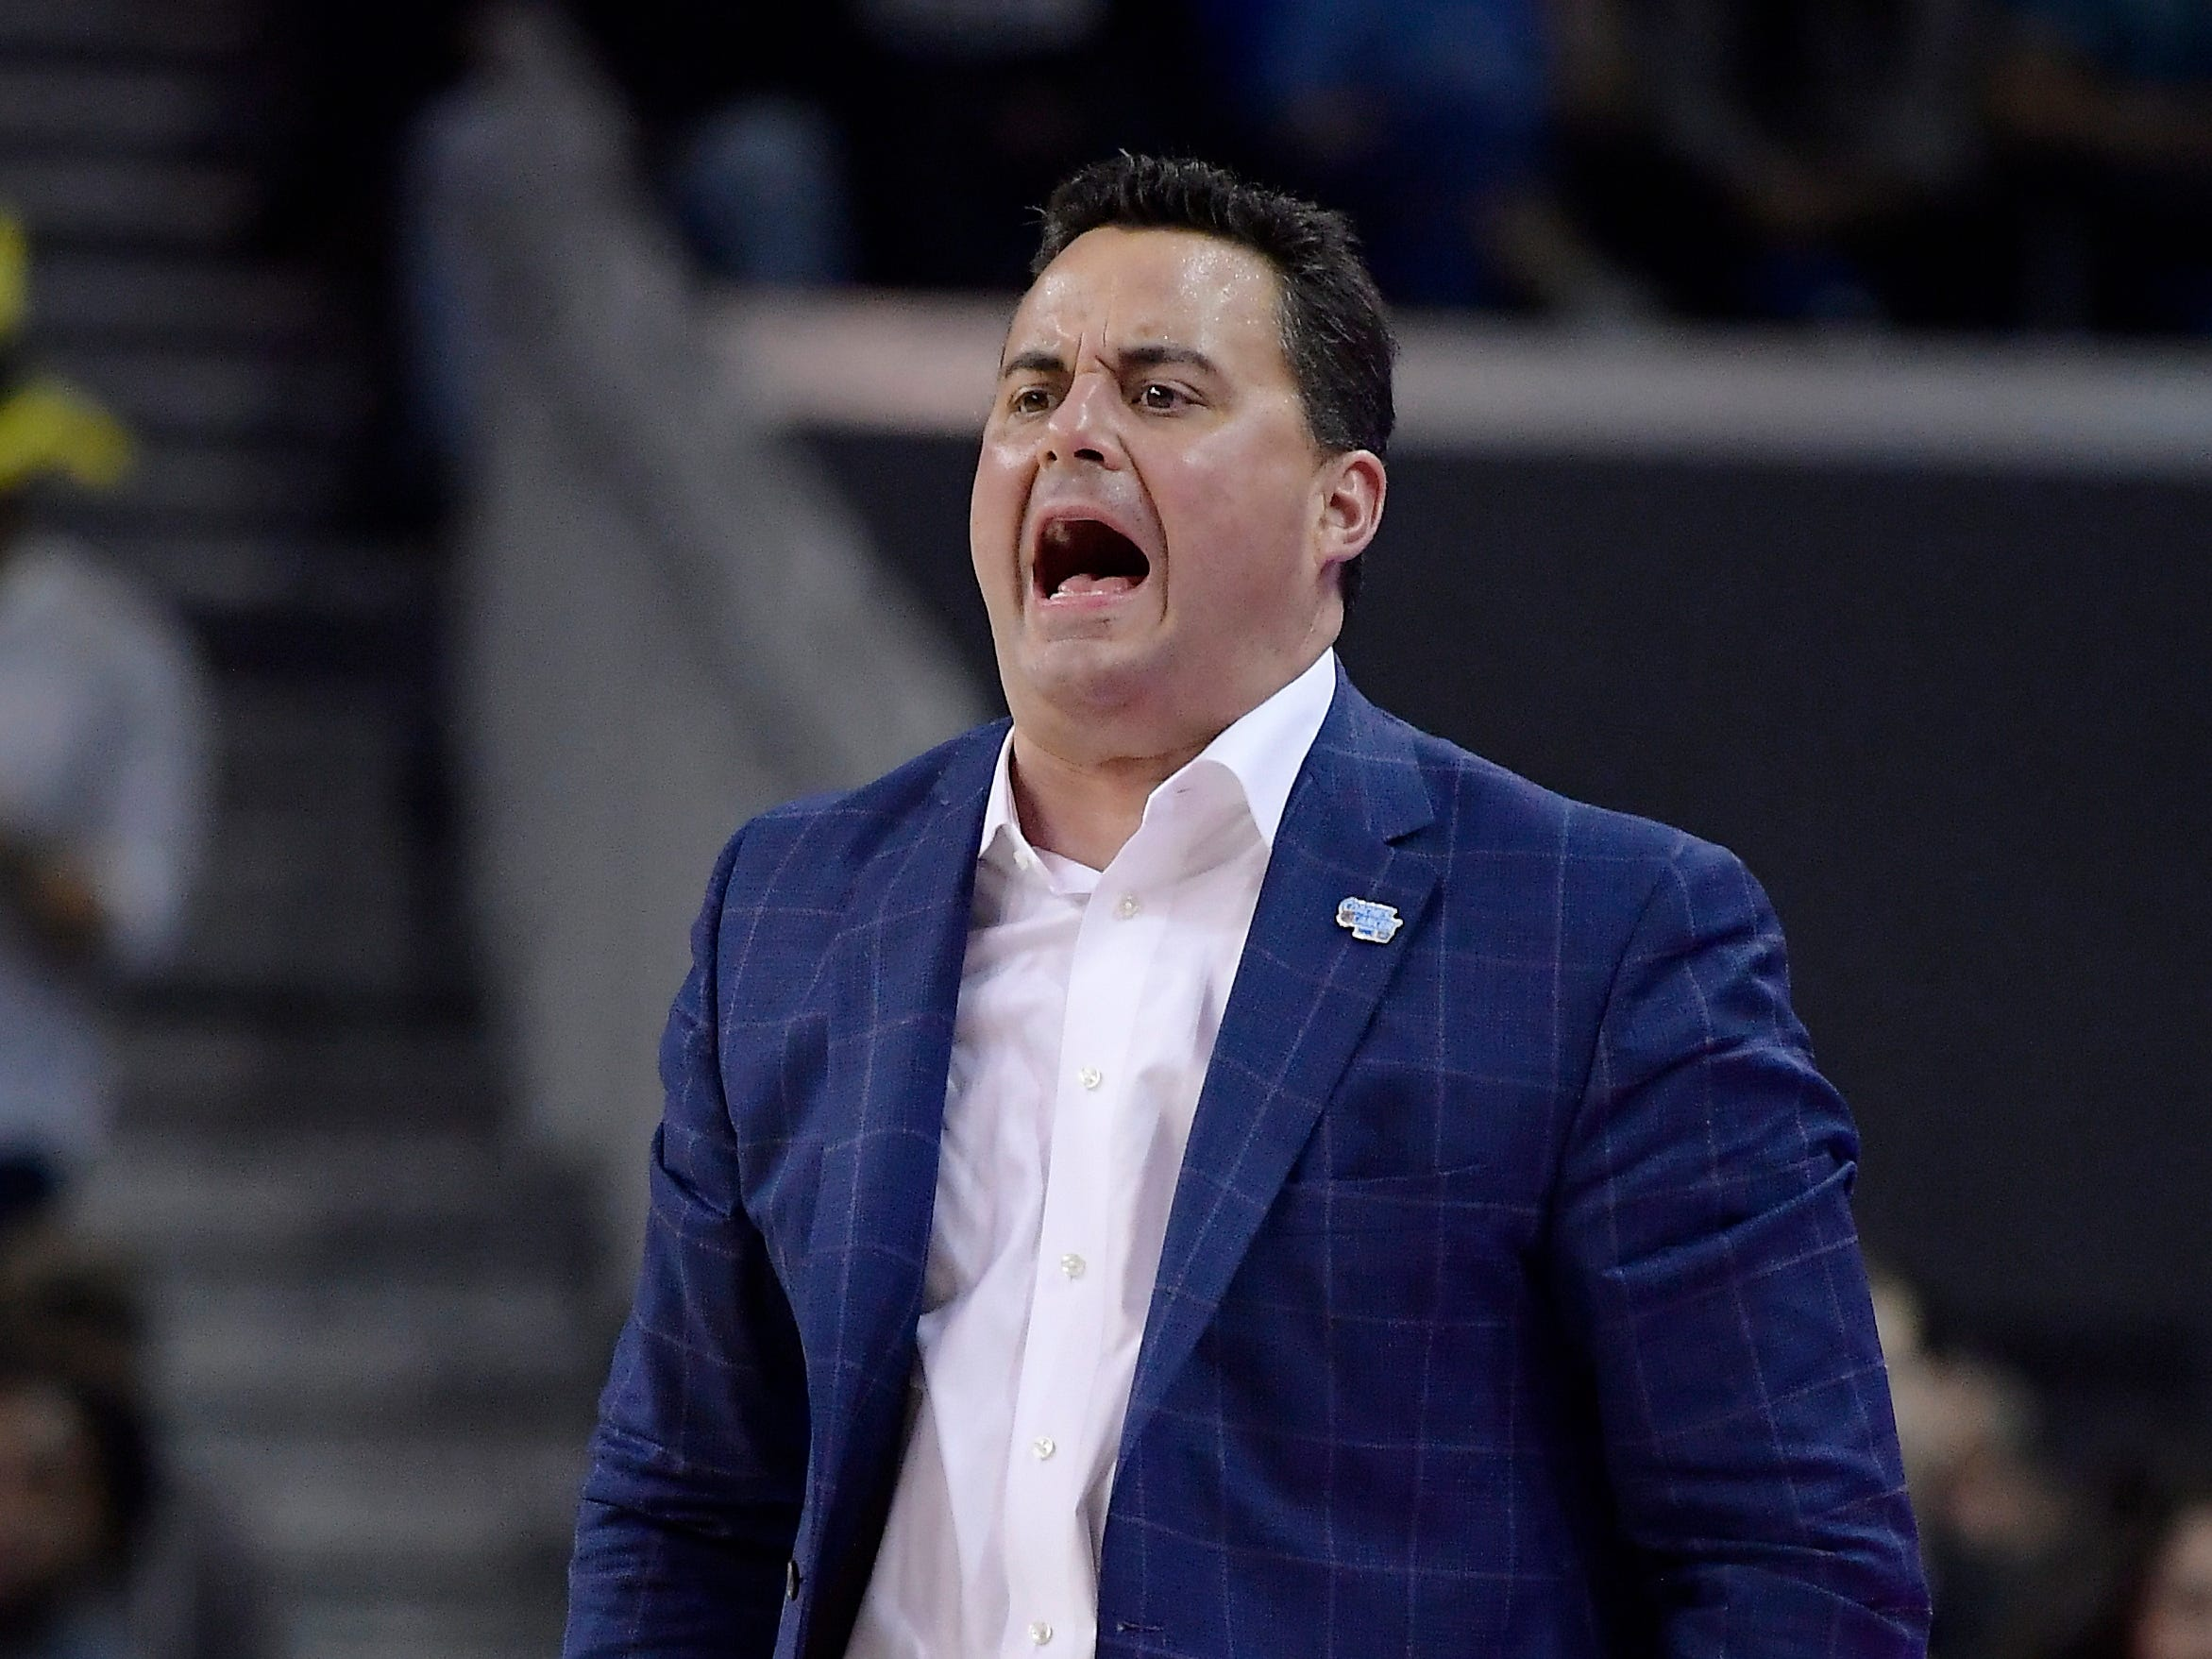 Arizona coach Sean Miller yells to his team during the second half of an NCAA college basketball game against UCLA on Saturday, Jan. 26, 2019, in Los Angeles. UCLA won 90-69.